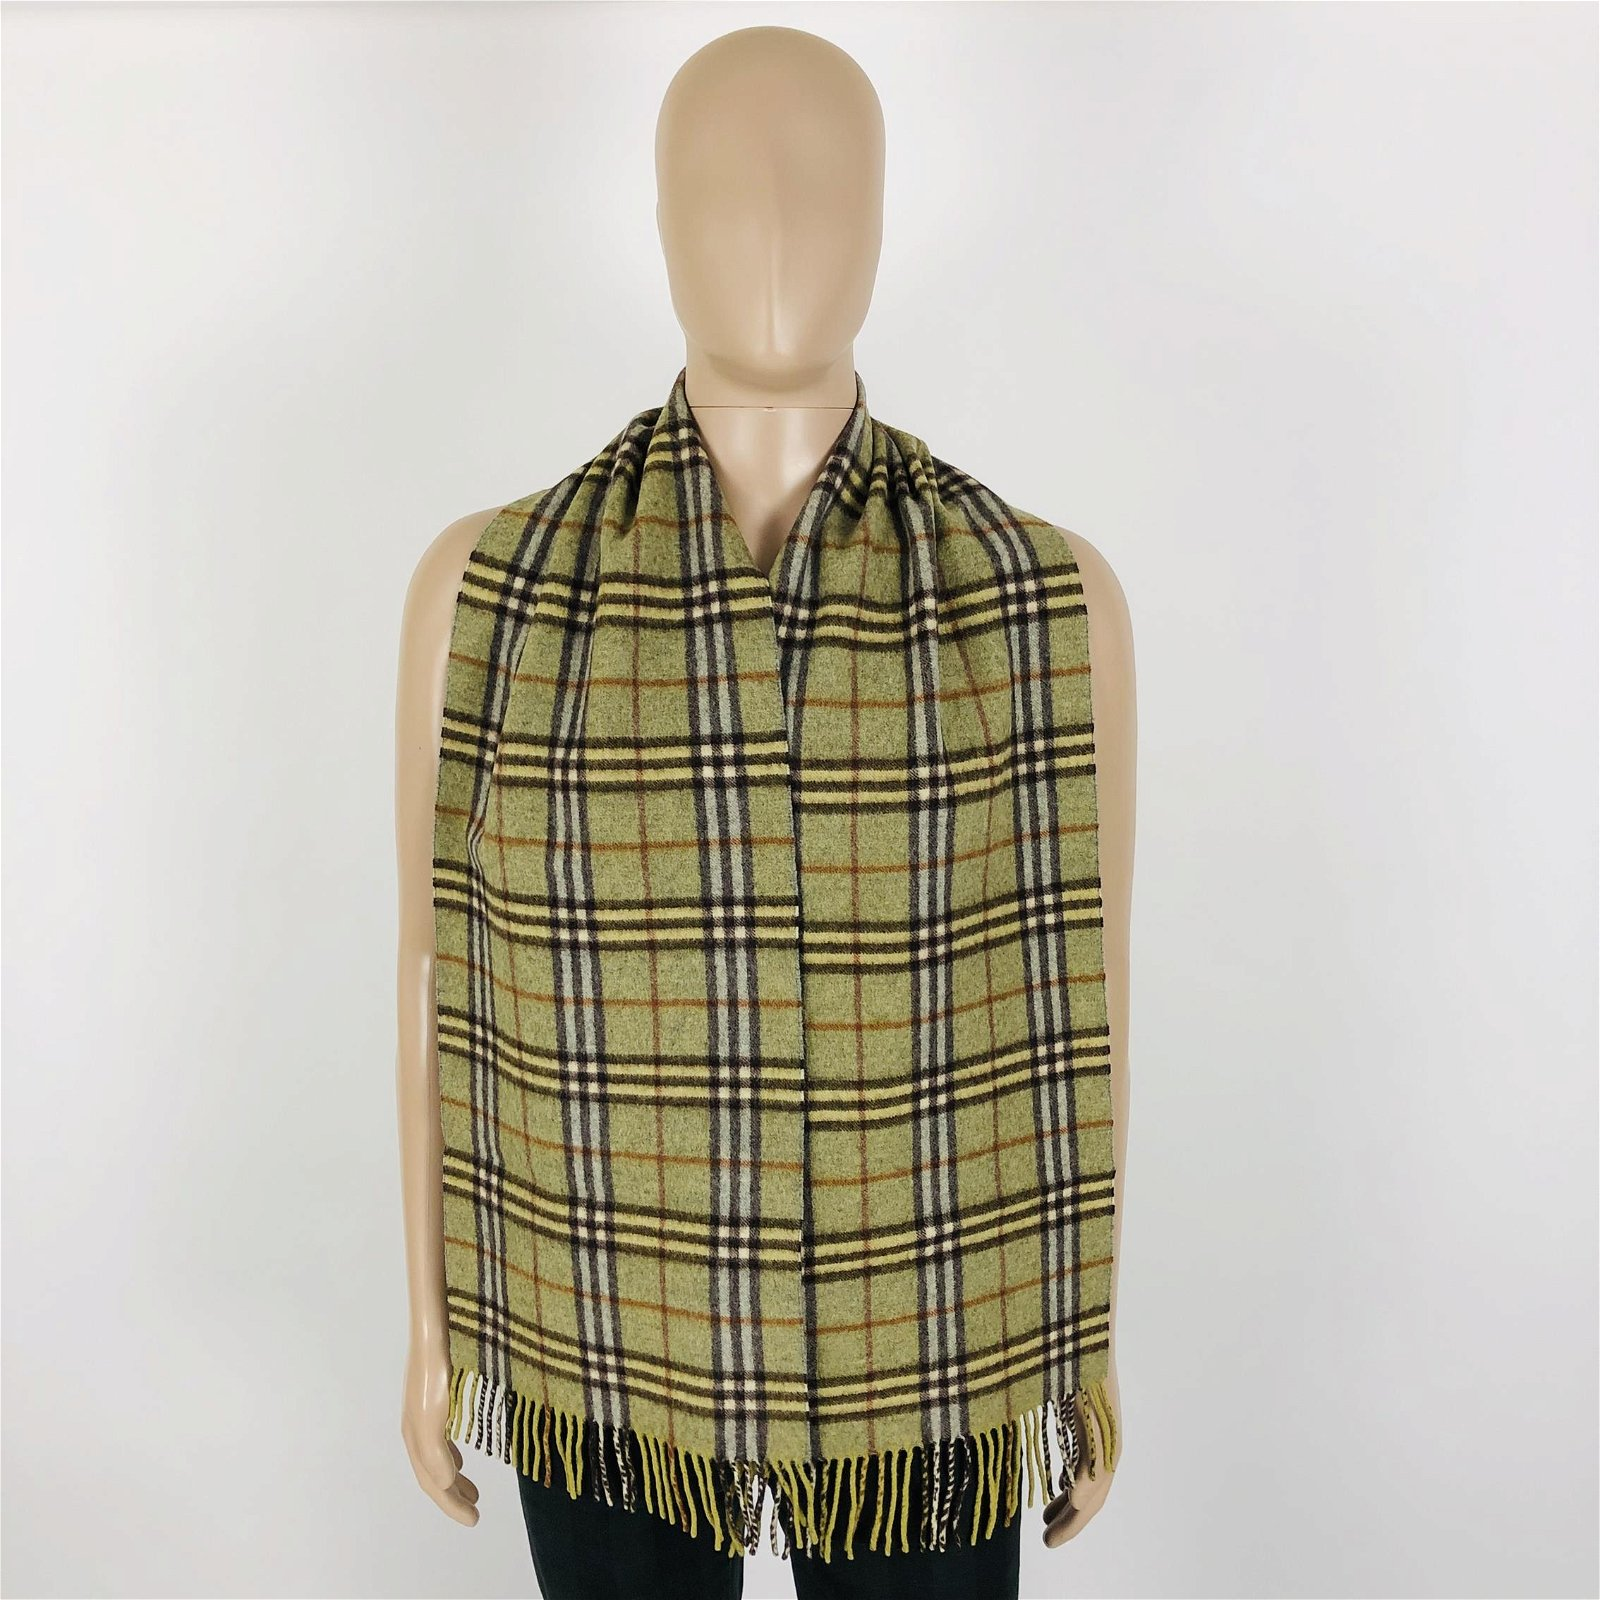 Vintage Burberry 100% Lambswool Scarf